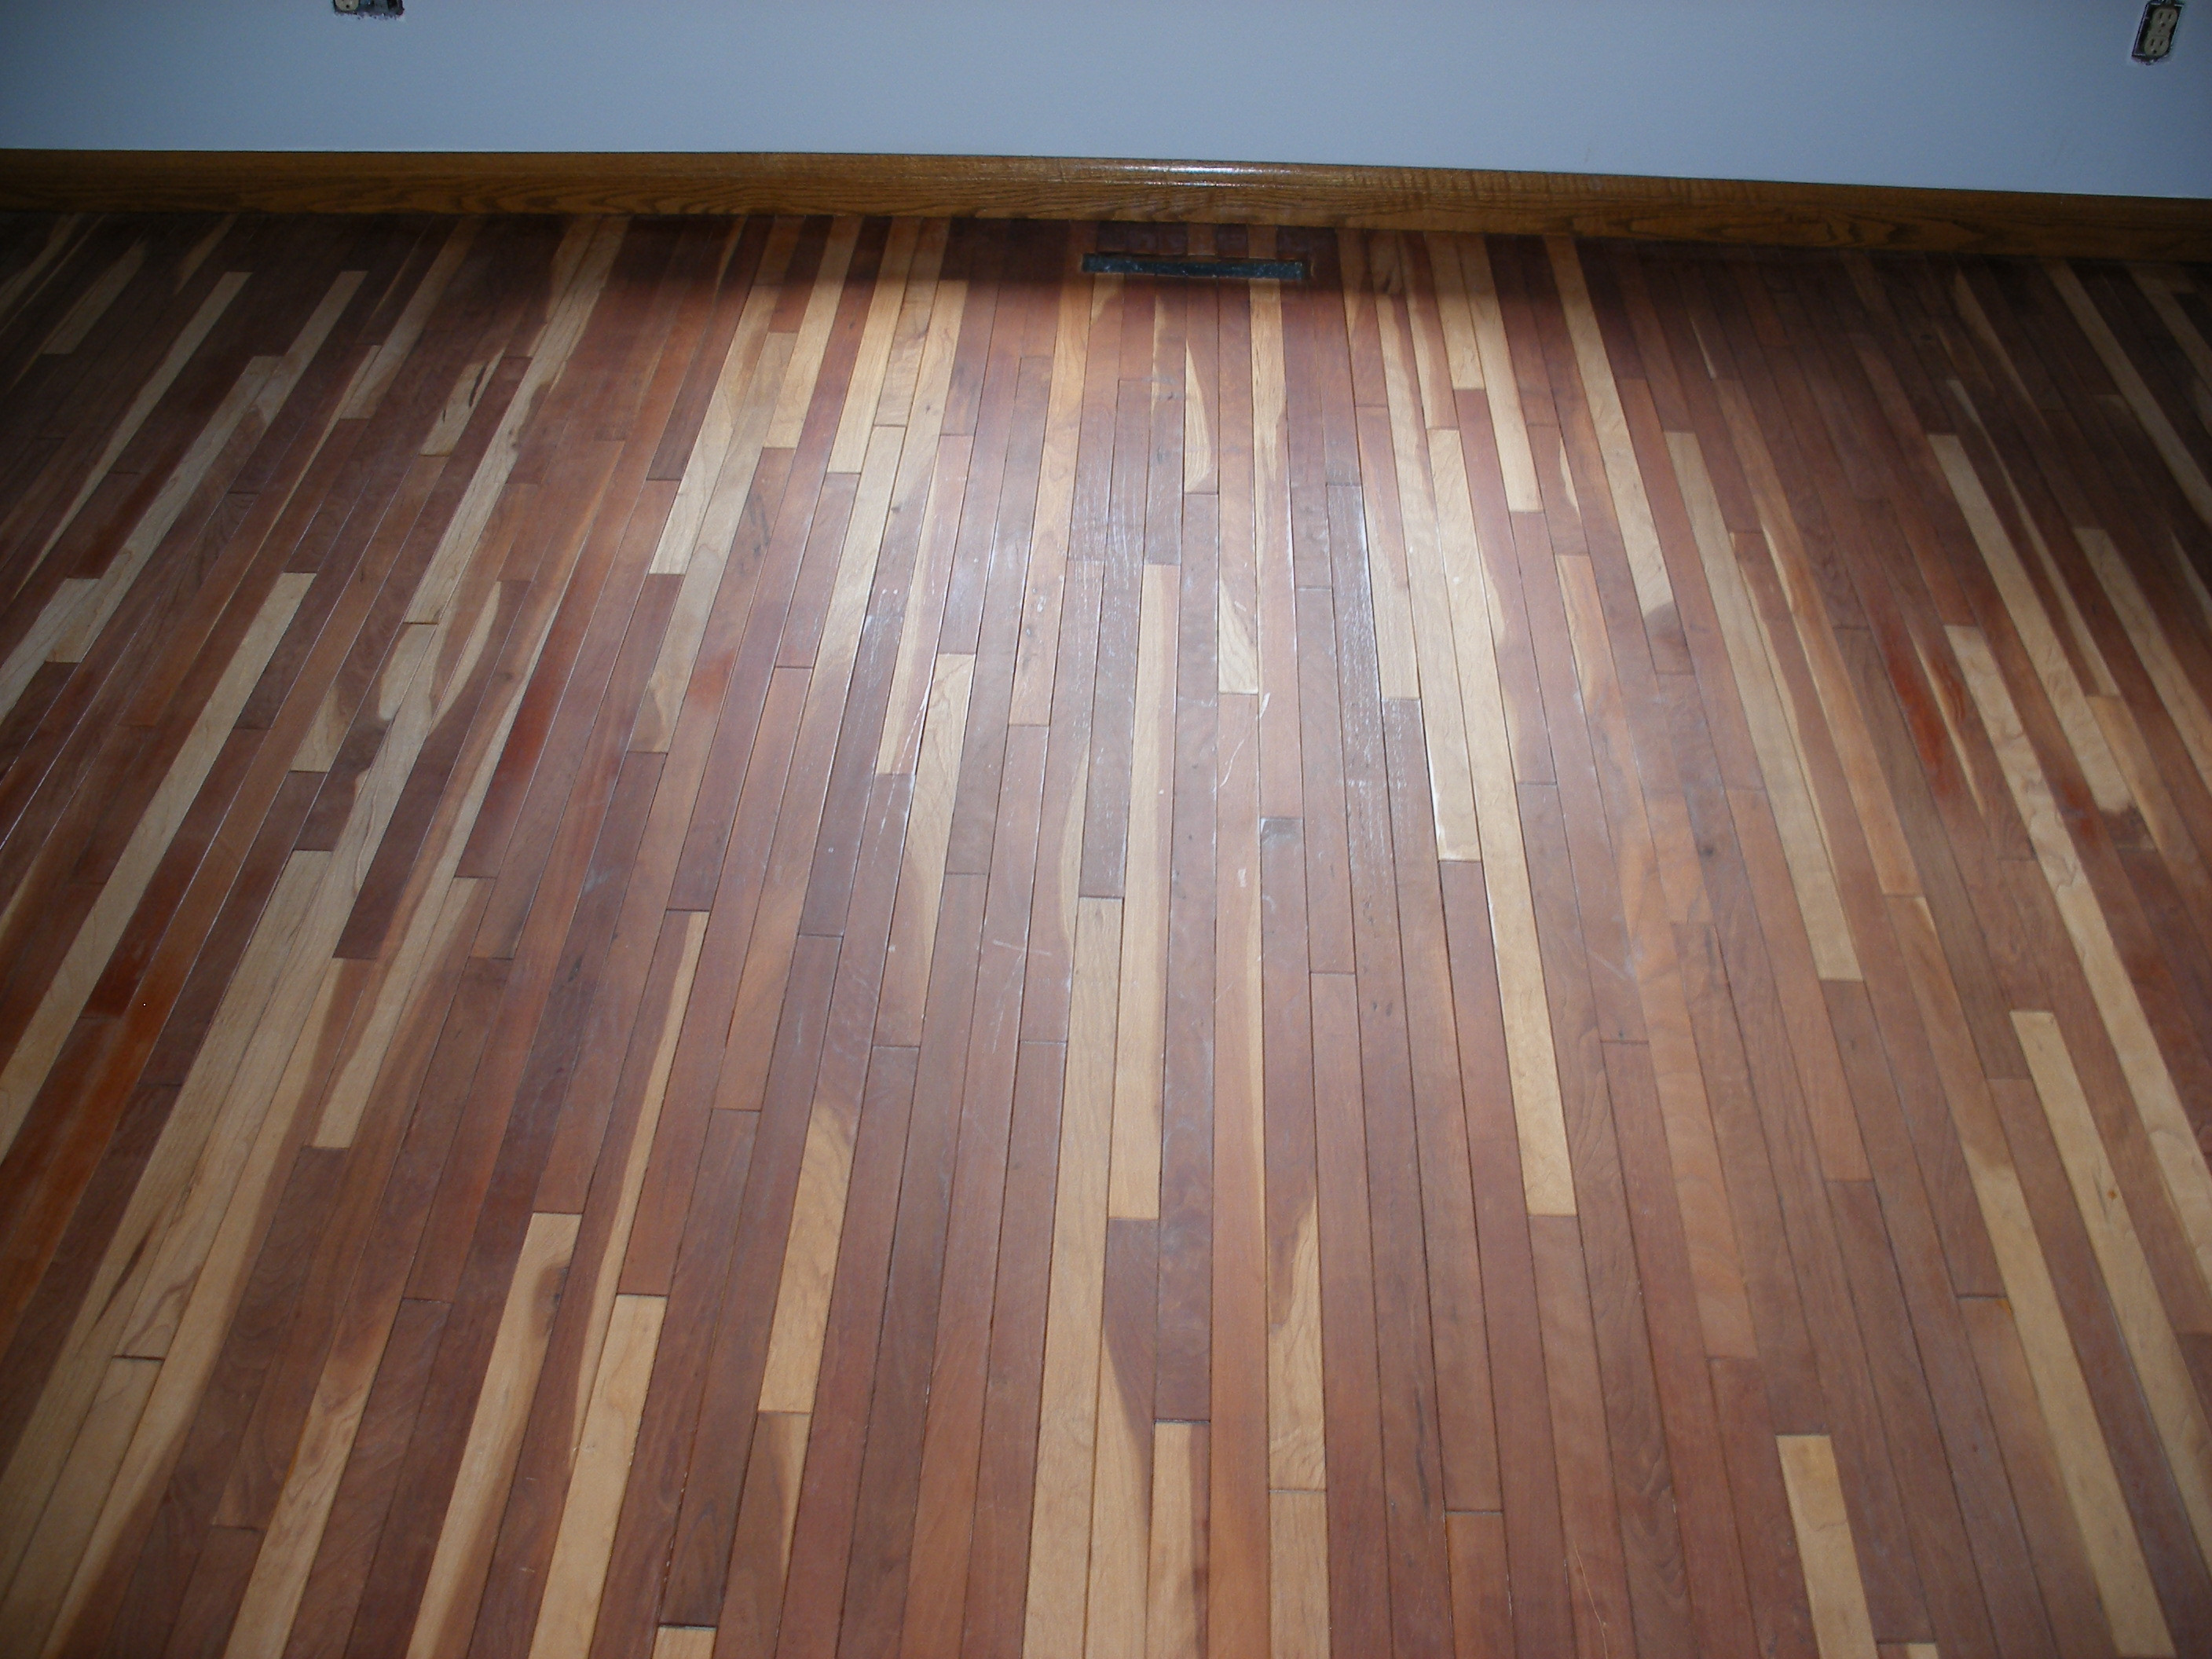 18 Fabulous How Much It Cost To Refinish Hardwood Floors